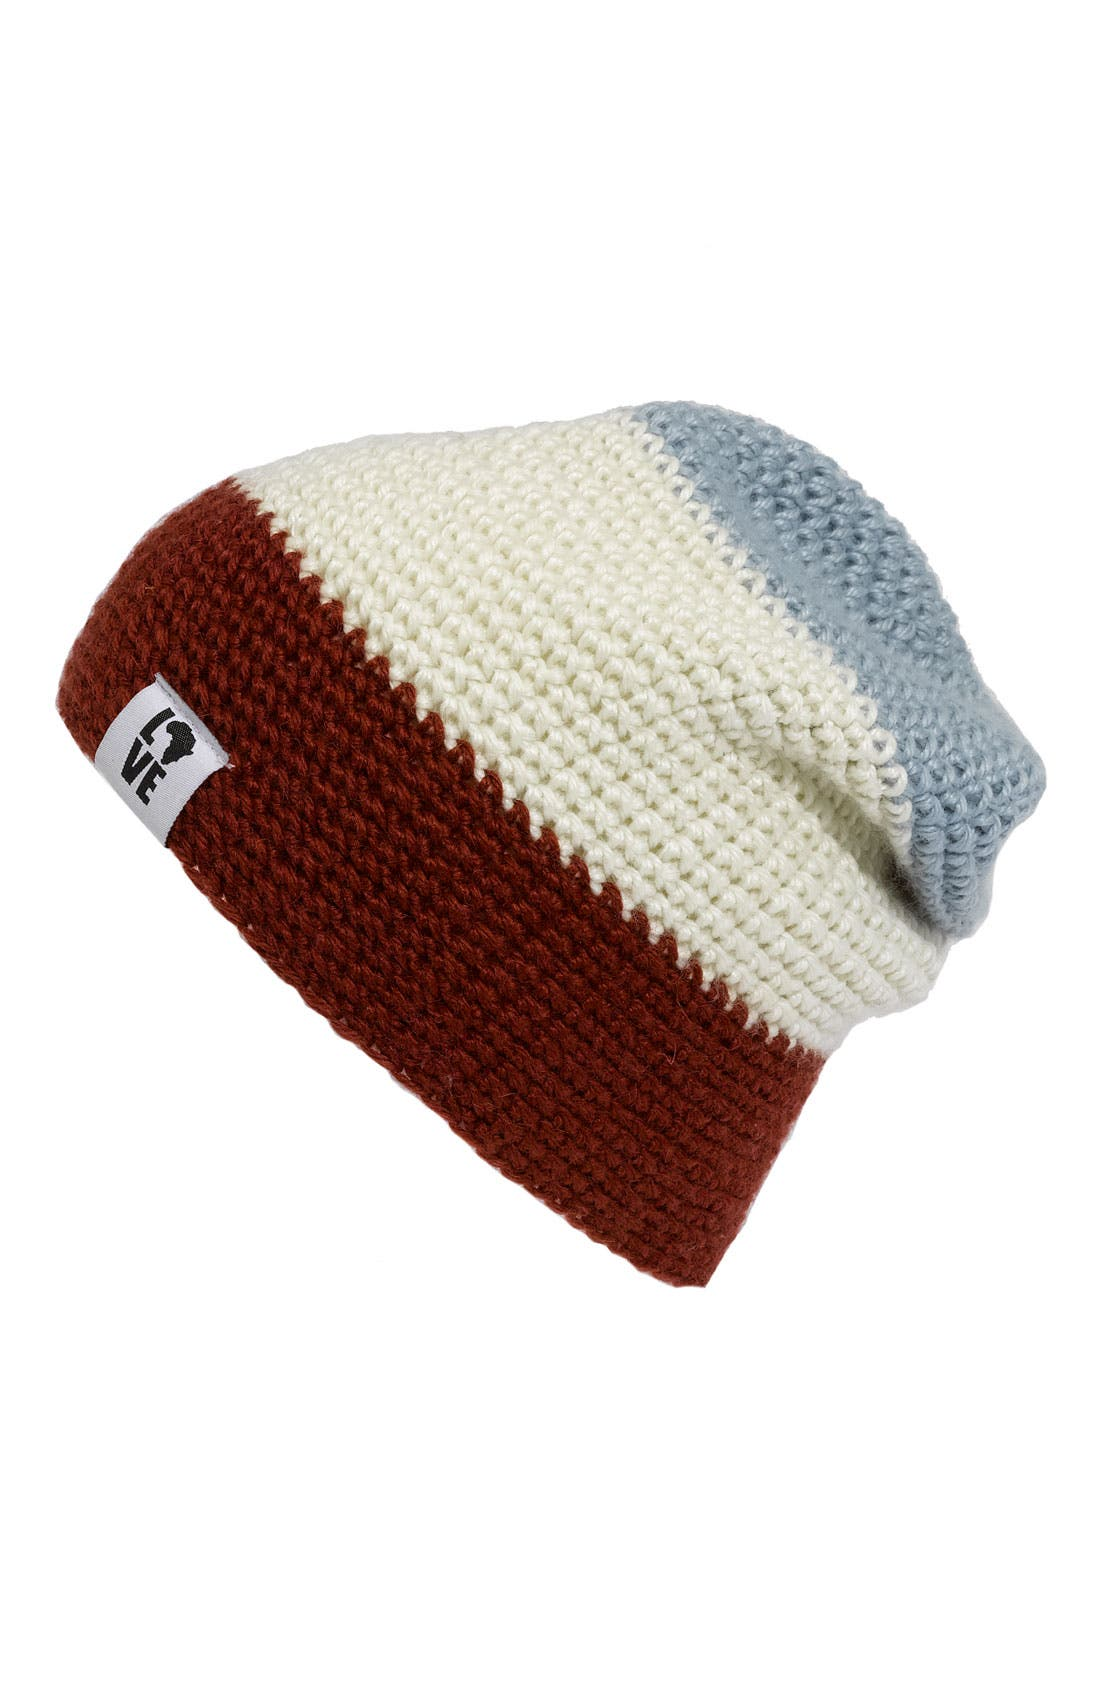 Alternate Image 1 Selected - Krochet Kids '5207.5' Hand Crochet Slouchy Beanie